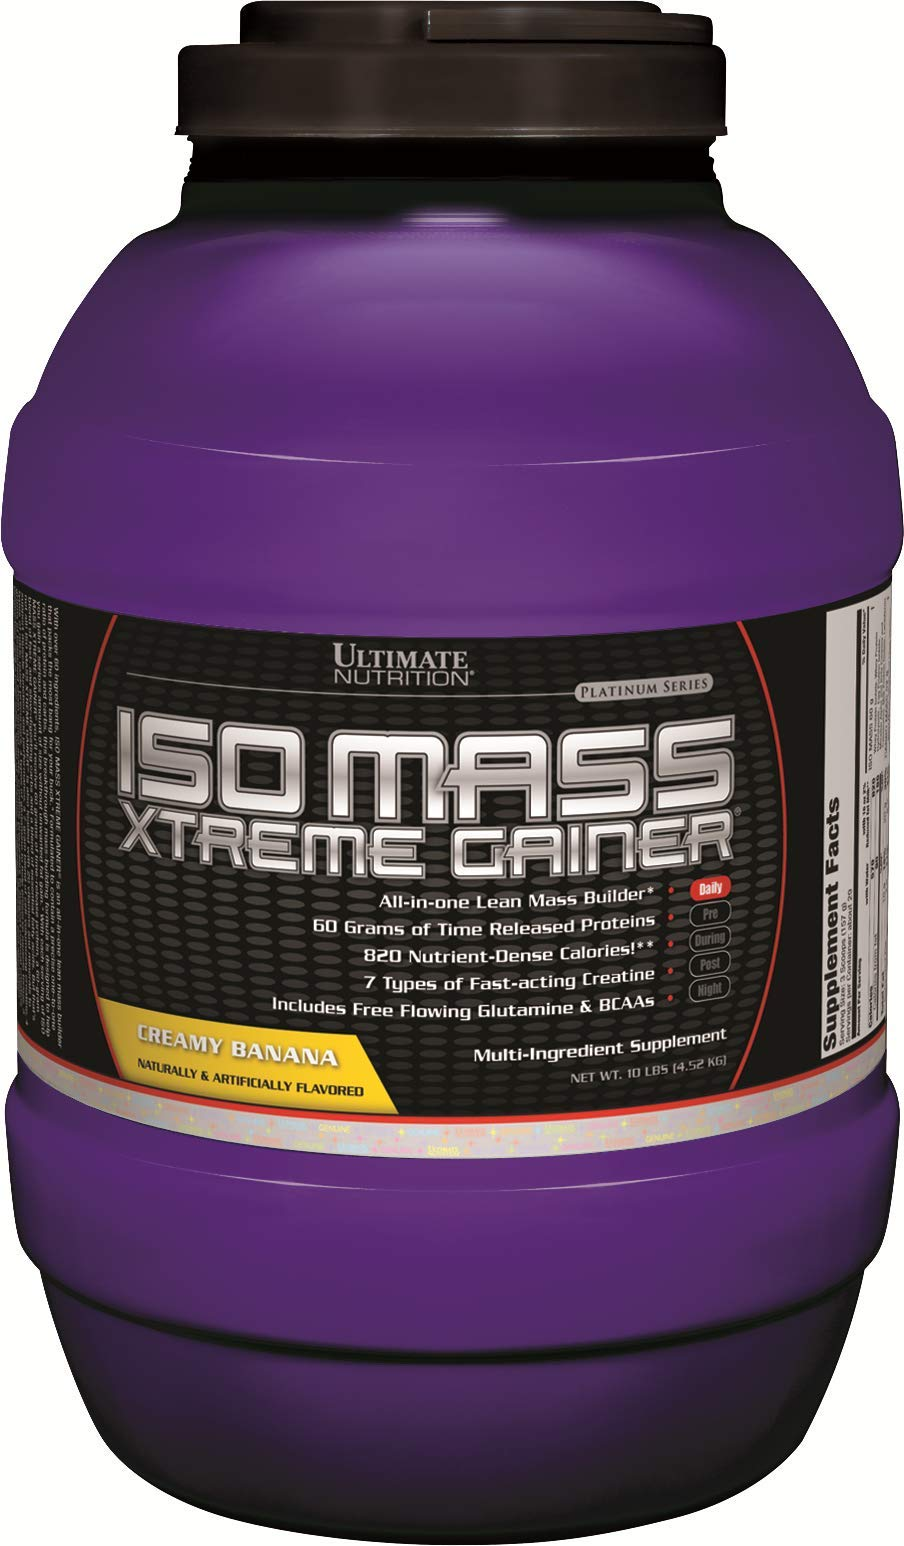 Ultimate Nutrition Iso Mass Xtreme Gainer Serious Weight and Lean Muscle Mass Protein Powder, Banana, 30 Servings